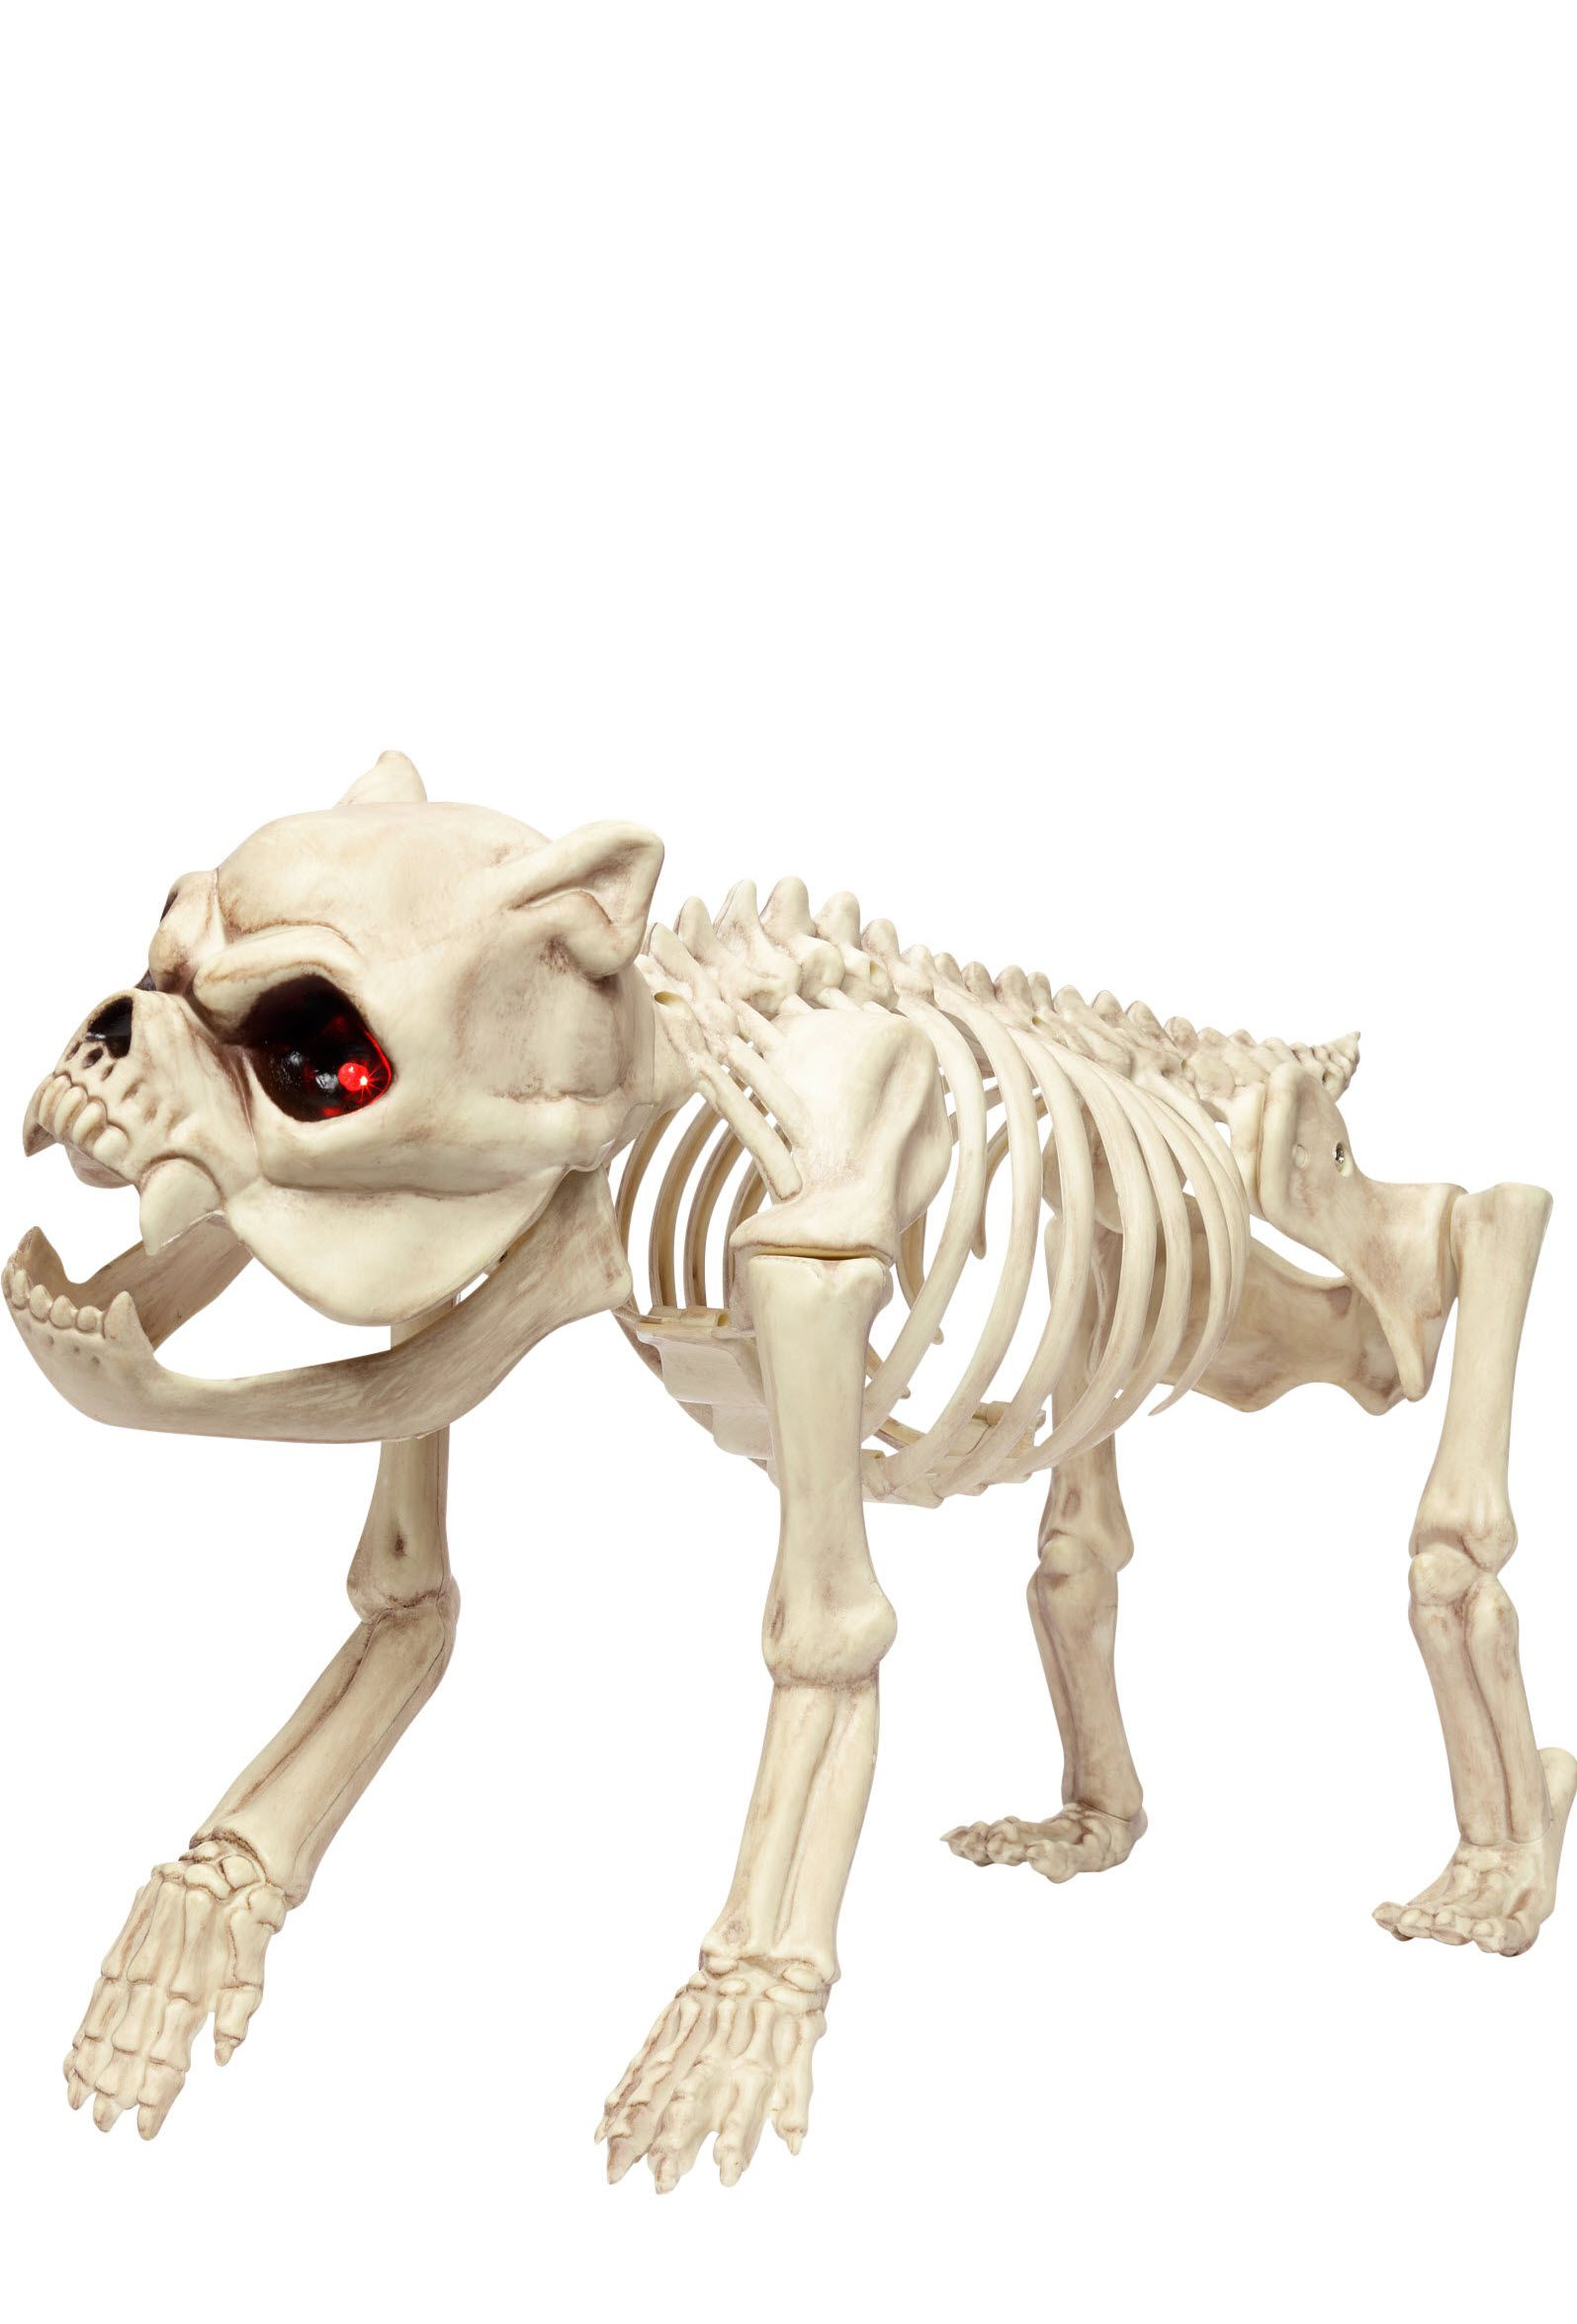 the perfect addition to your haunted home the small skeleton dog stands 112 inches tall scary halloween propshalloween decorationshalloween